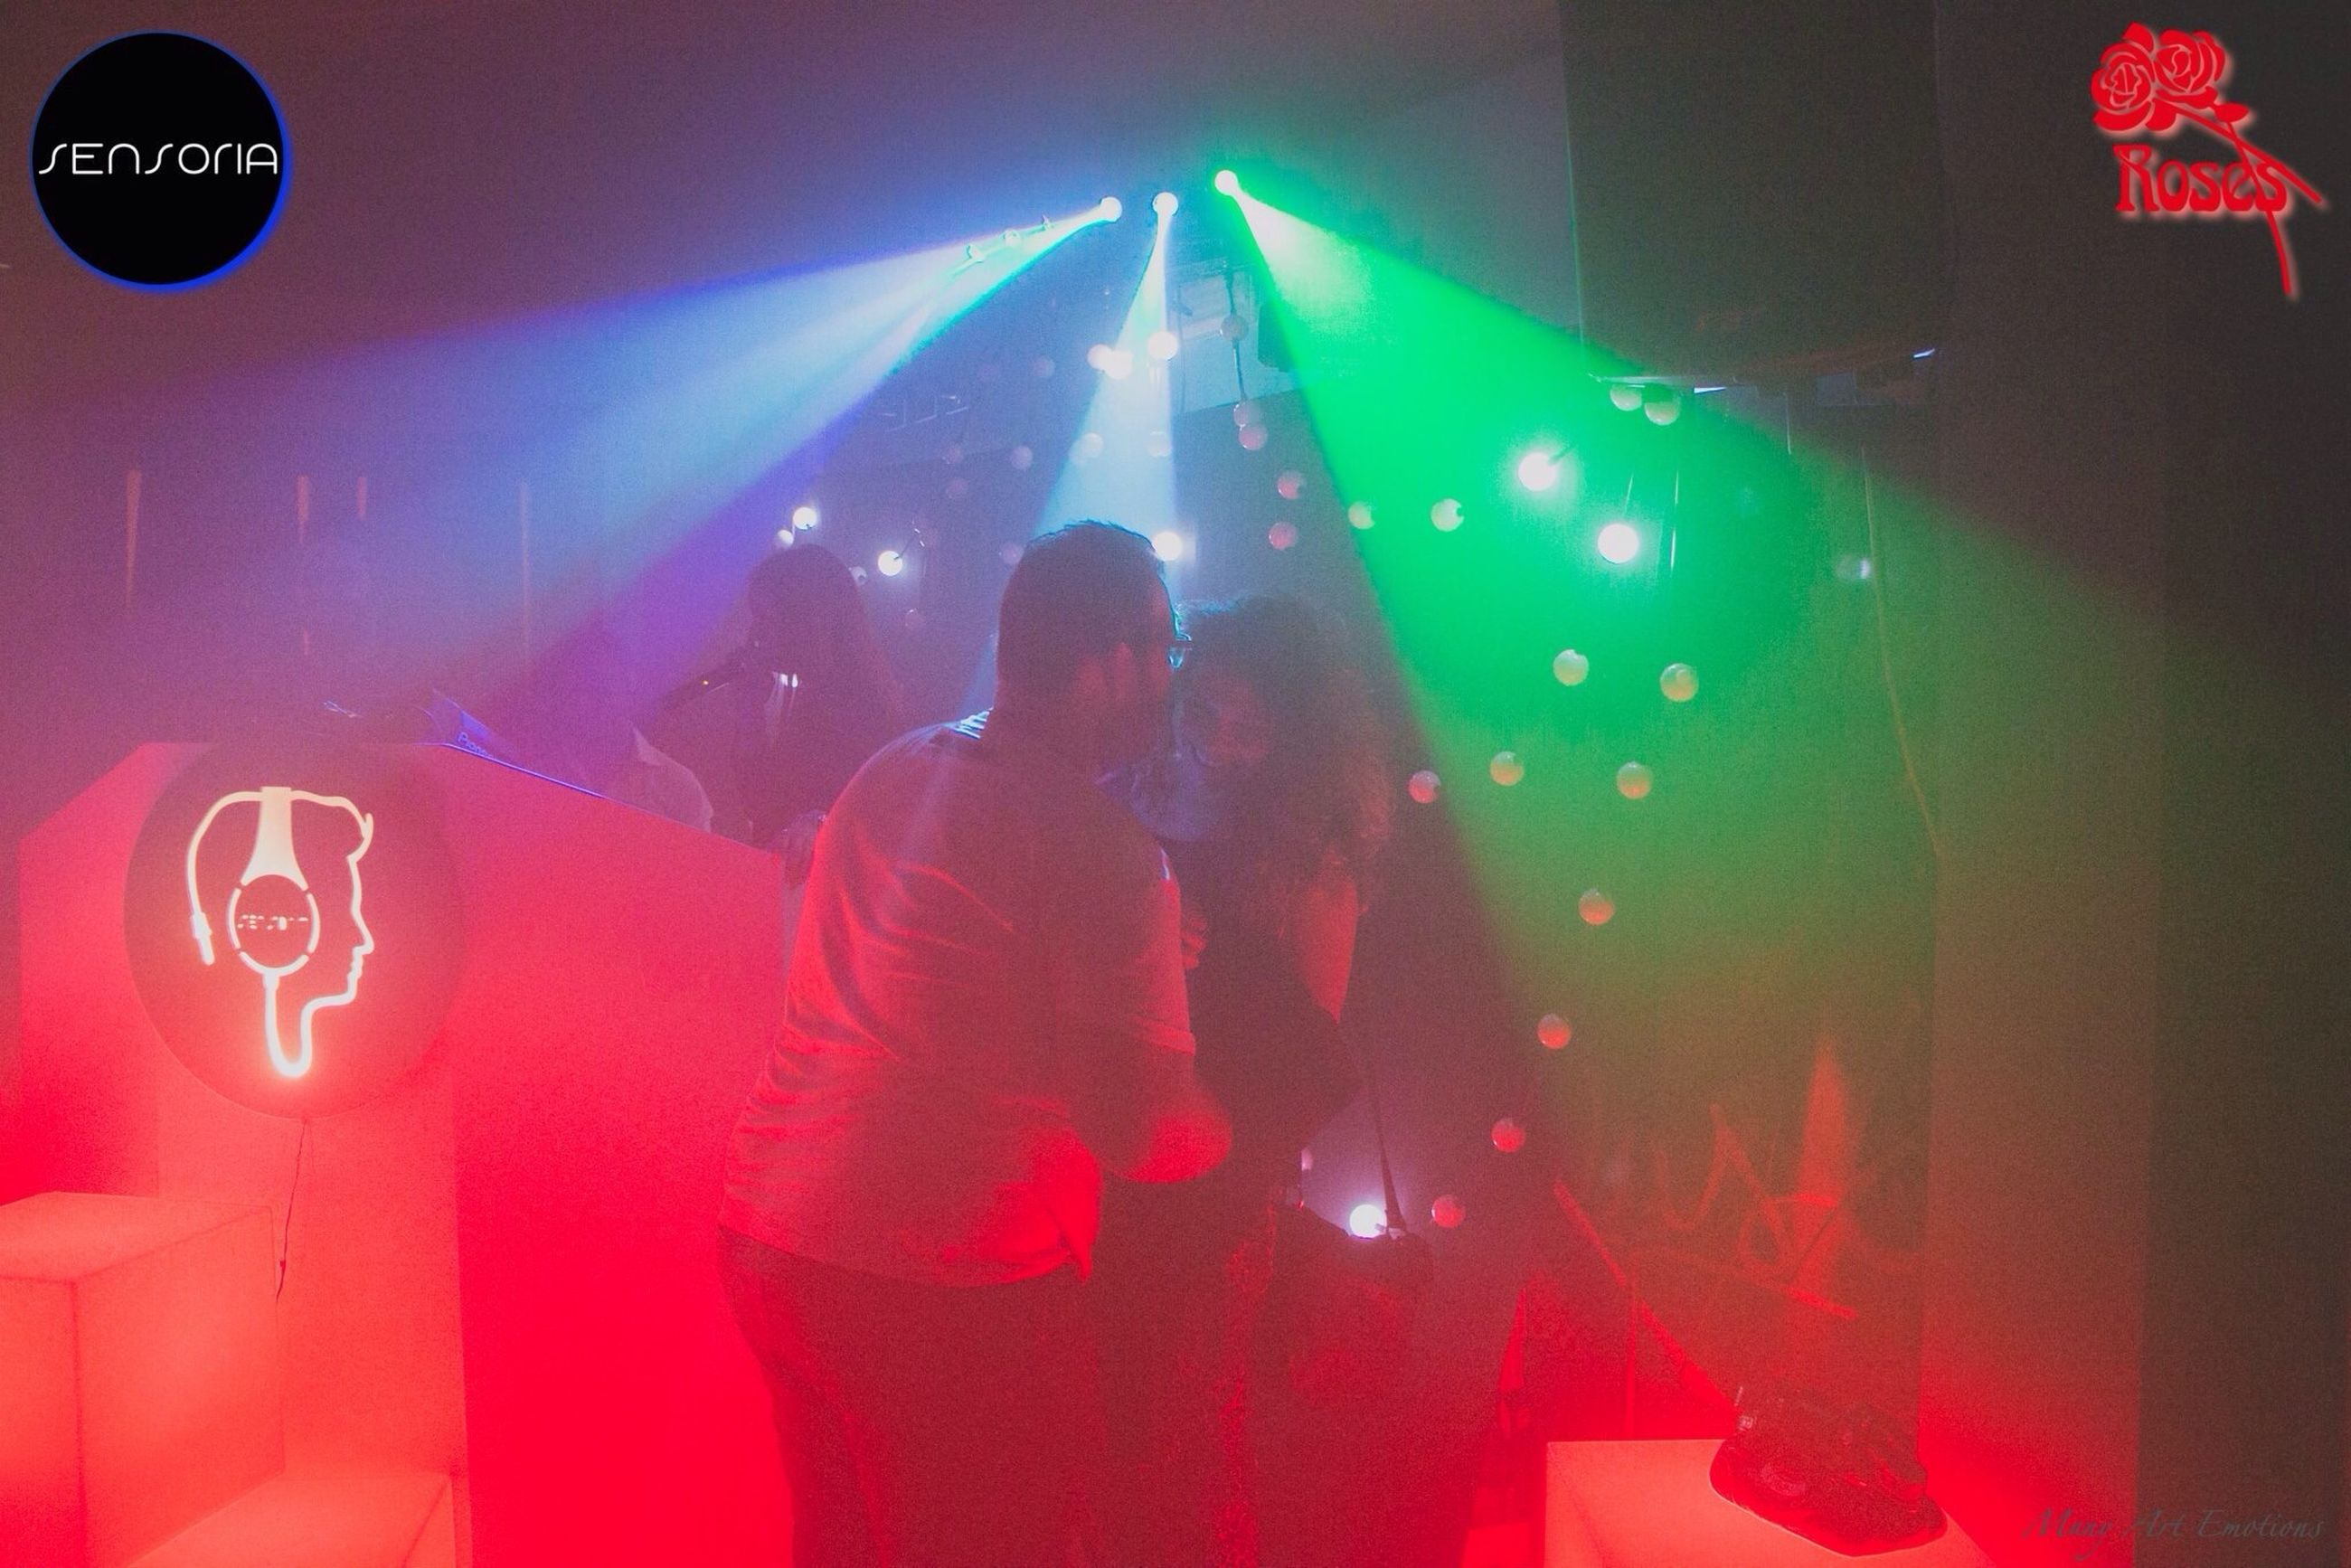 illuminated, indoors, night, celebration, lighting equipment, red, communication, arts culture and entertainment, nightlife, men, leisure activity, text, lifestyles, human representation, light - natural phenomenon, performance, multi colored, neon, unrecognizable person